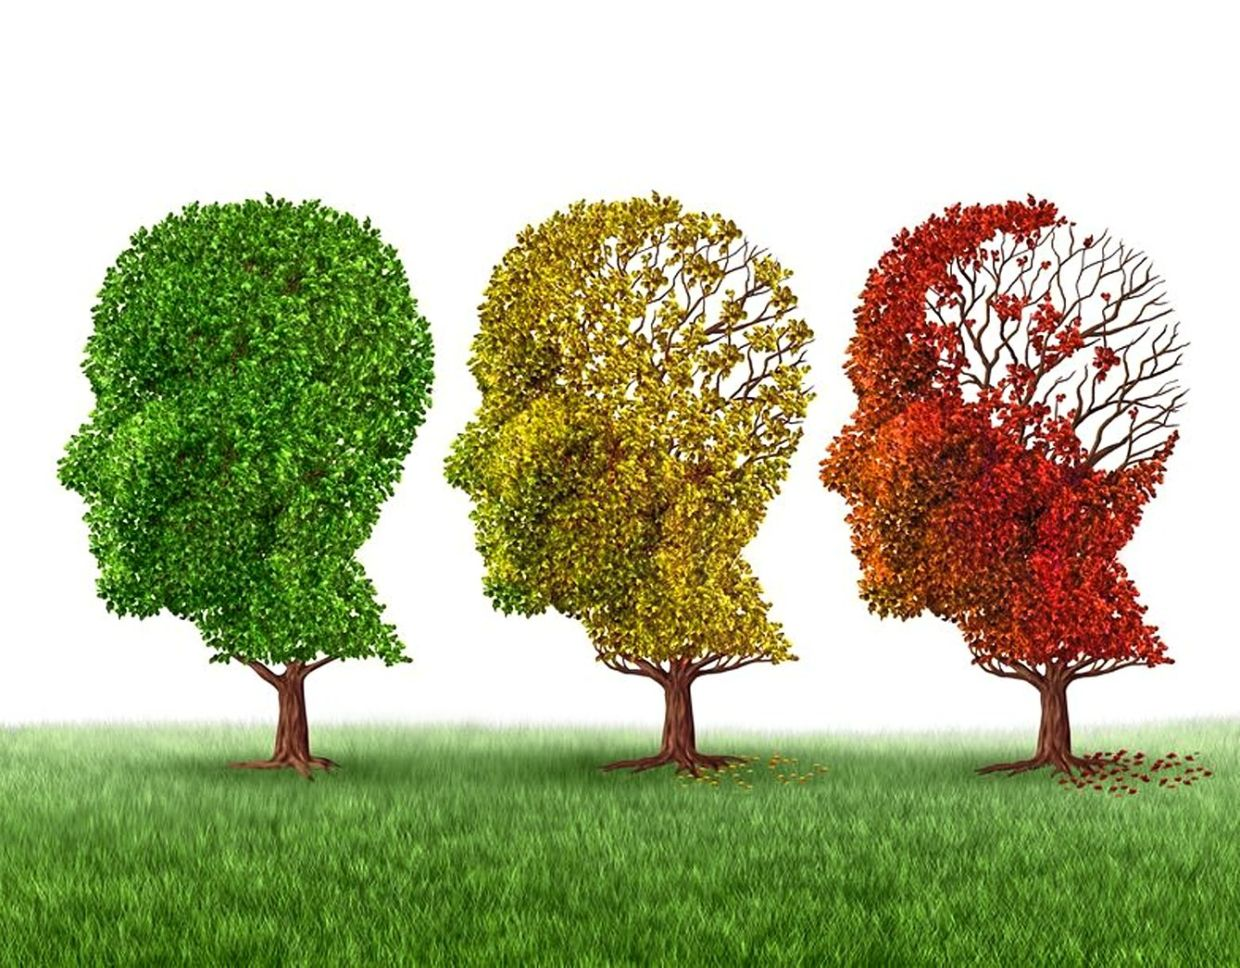 Alzheimer's is a degenerative disease of the brain that causes impaired functionality and memory loss. Photo: 123rf.com